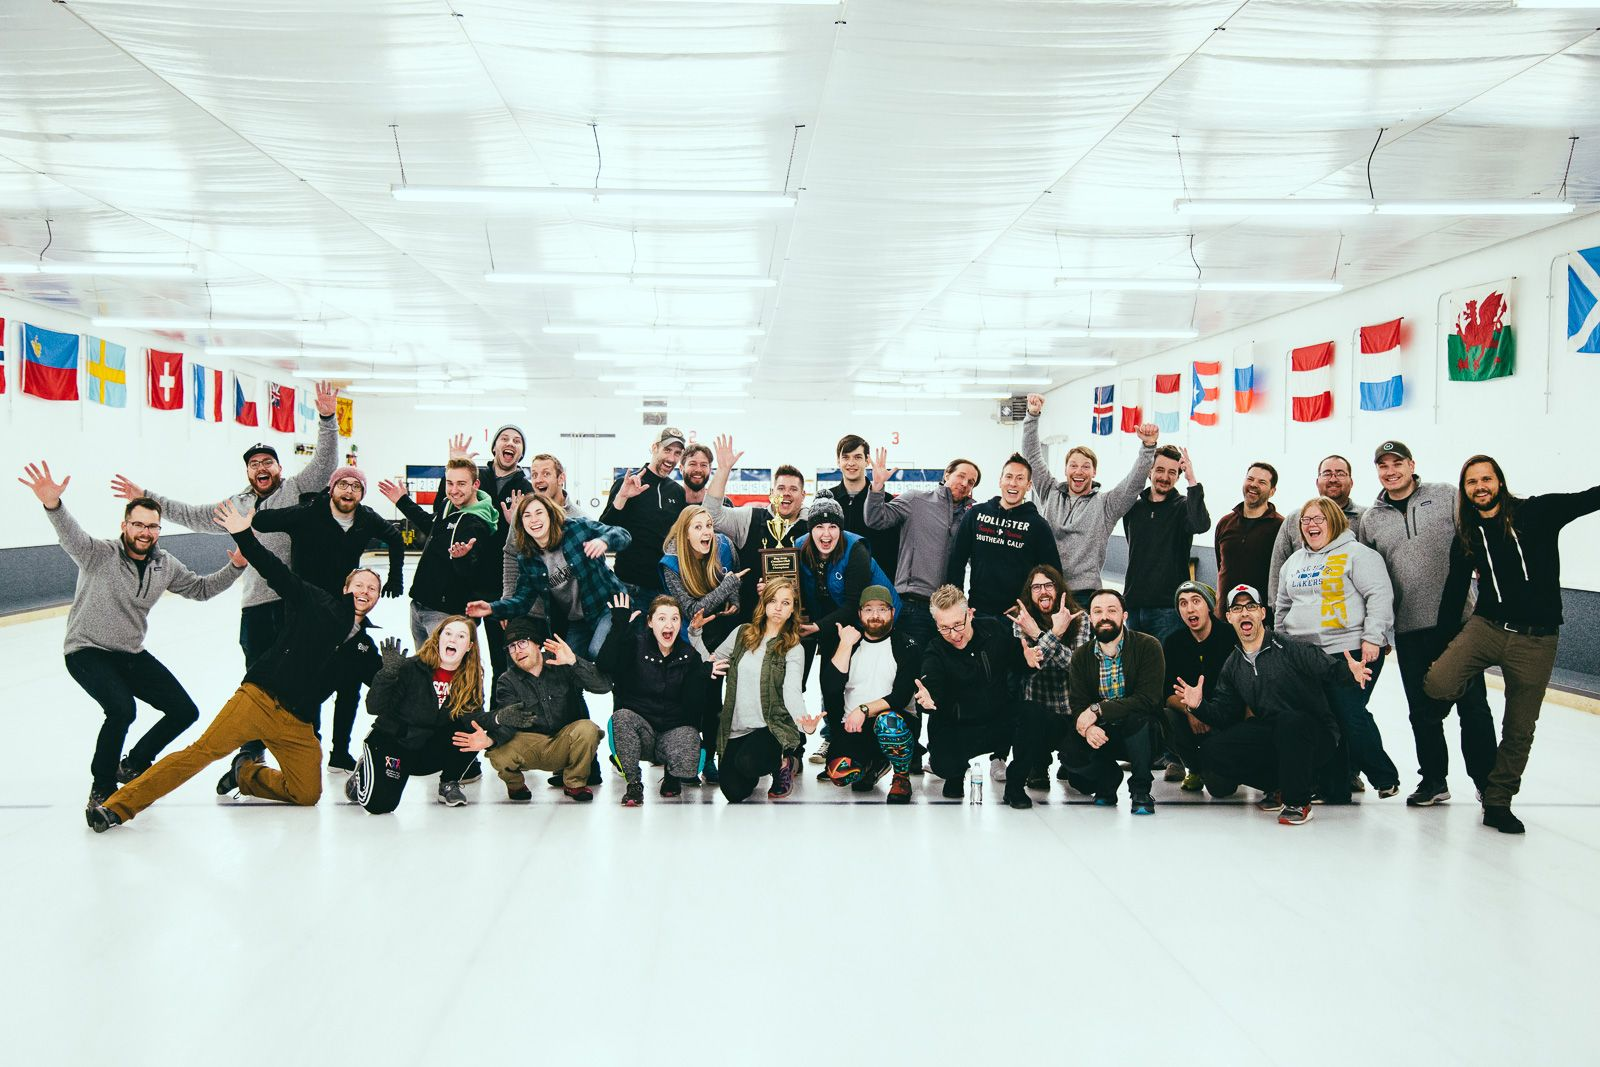 Bay Area Creative Club curling event